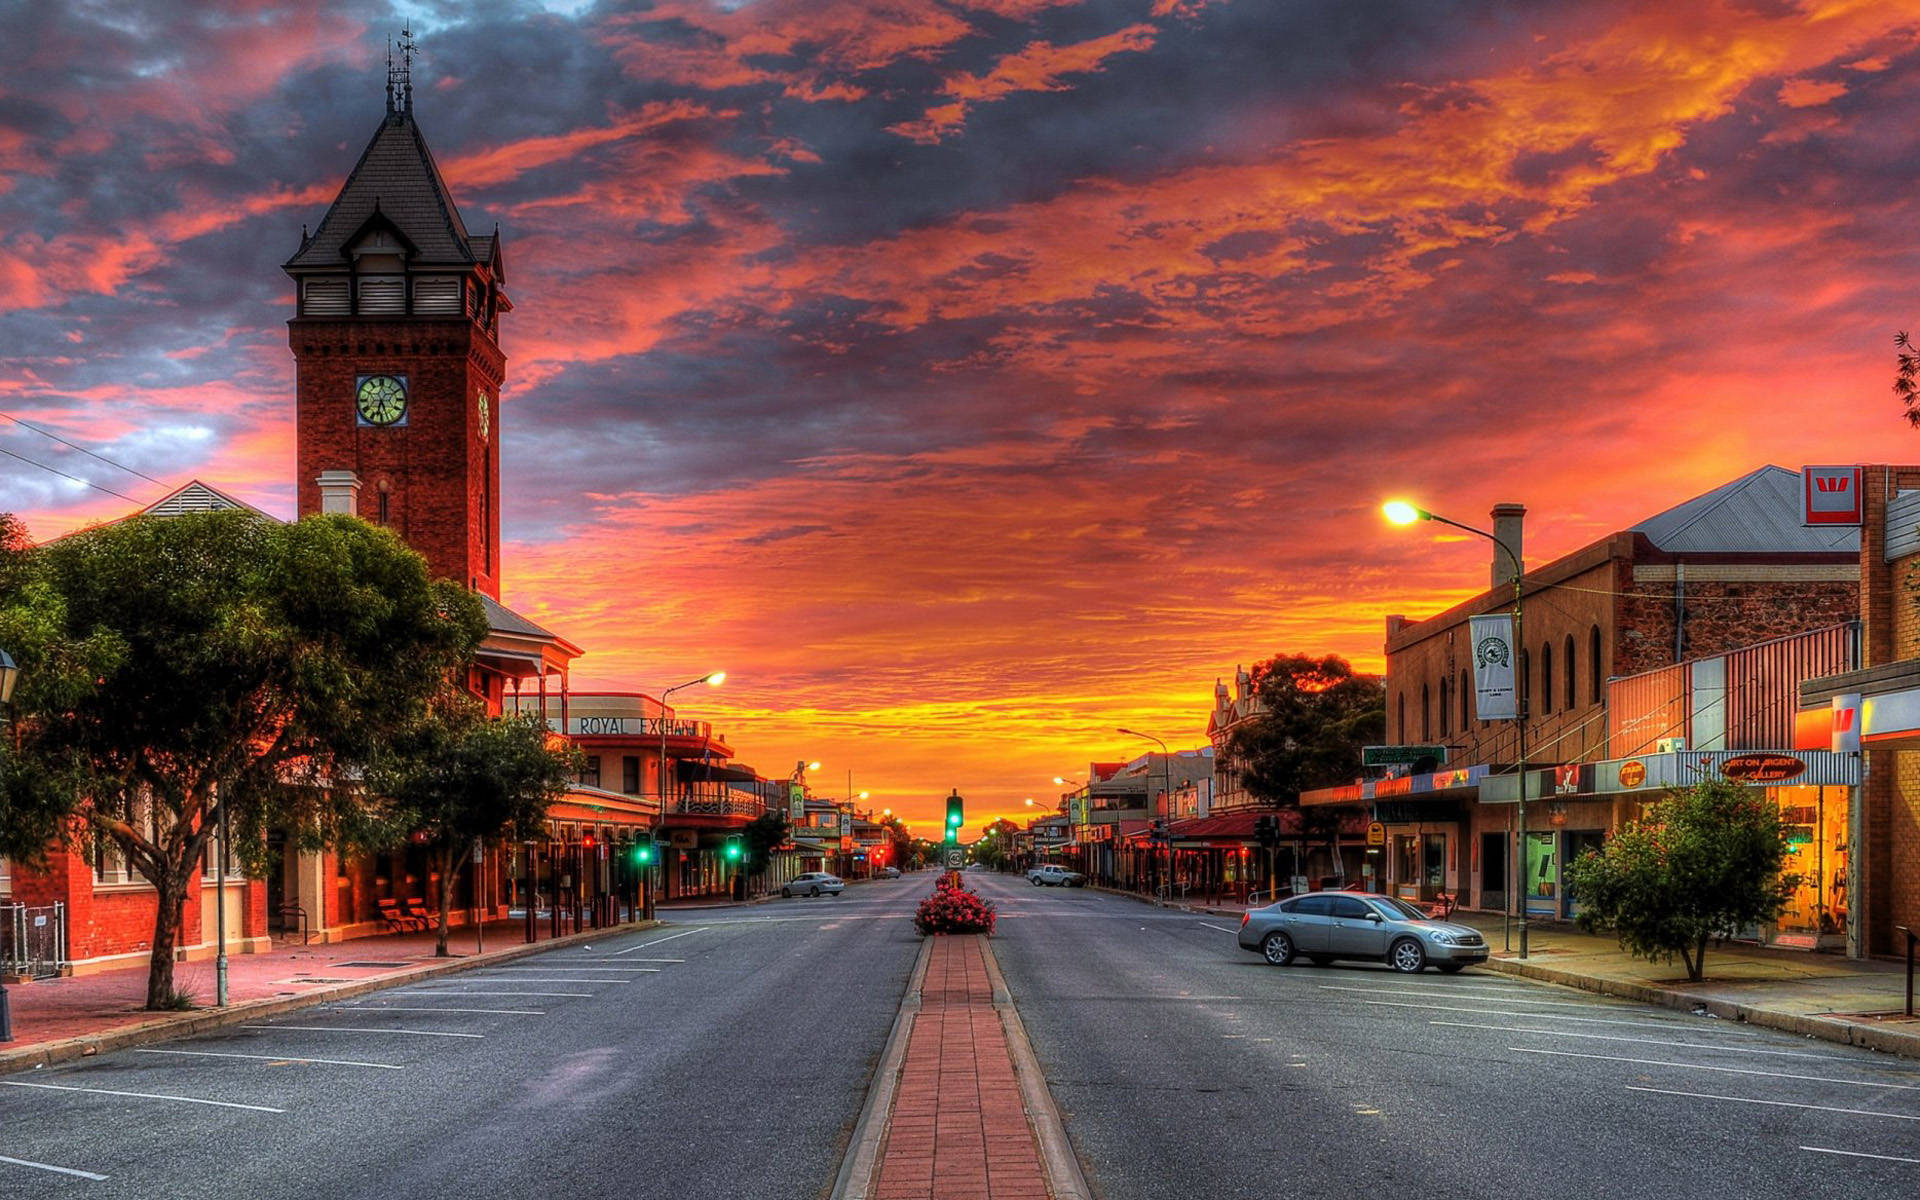 Australia streets sunset wallpaper